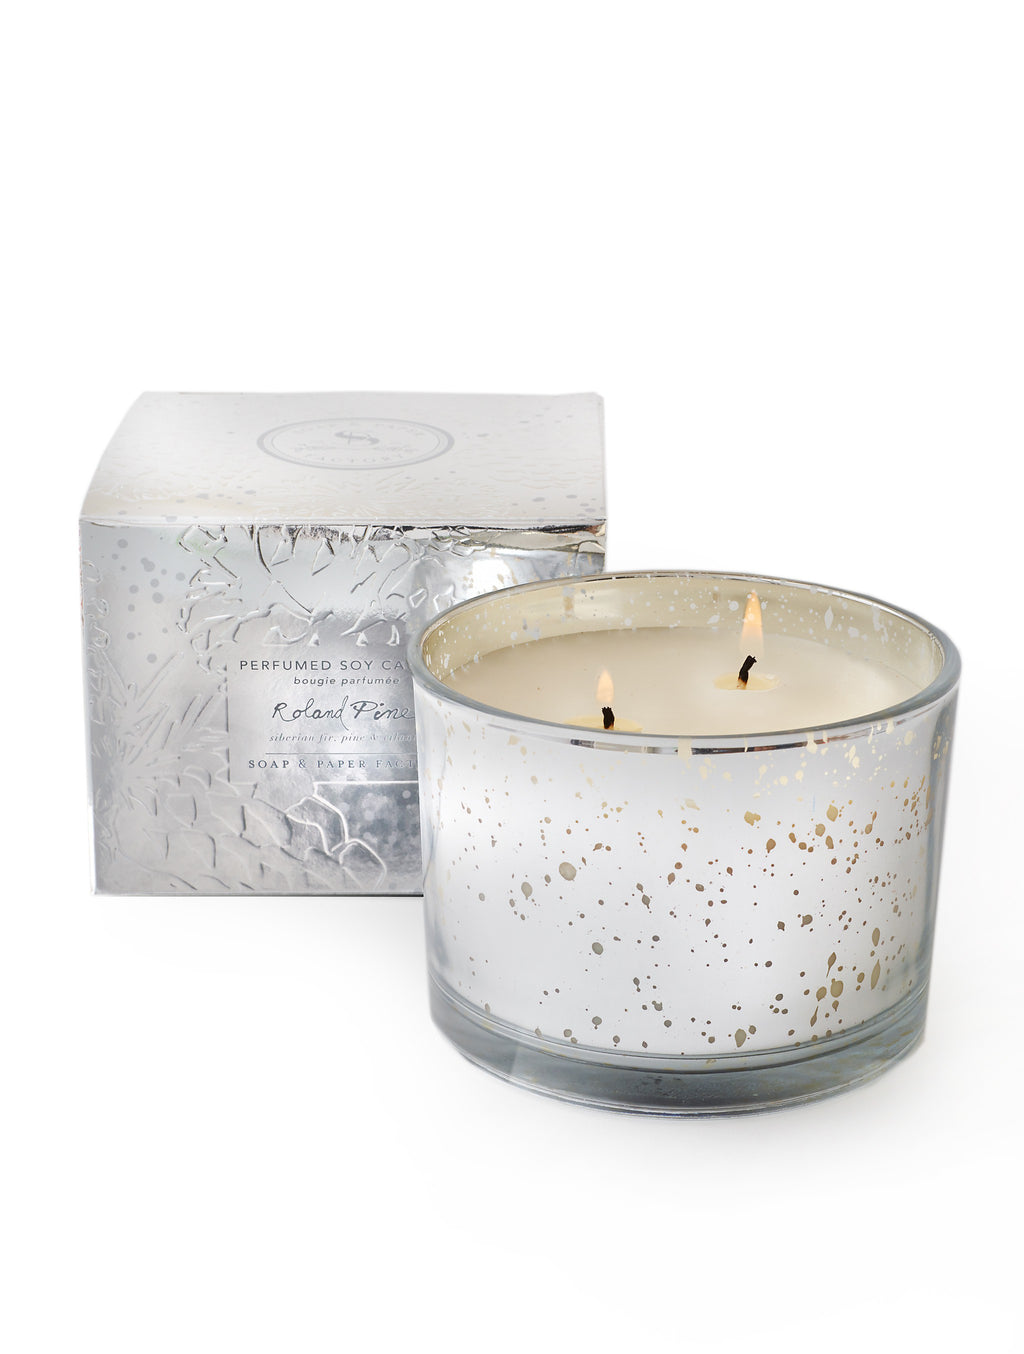 Roland Pine Lumiere Two-Wick Soy Candle - Wanderlustre